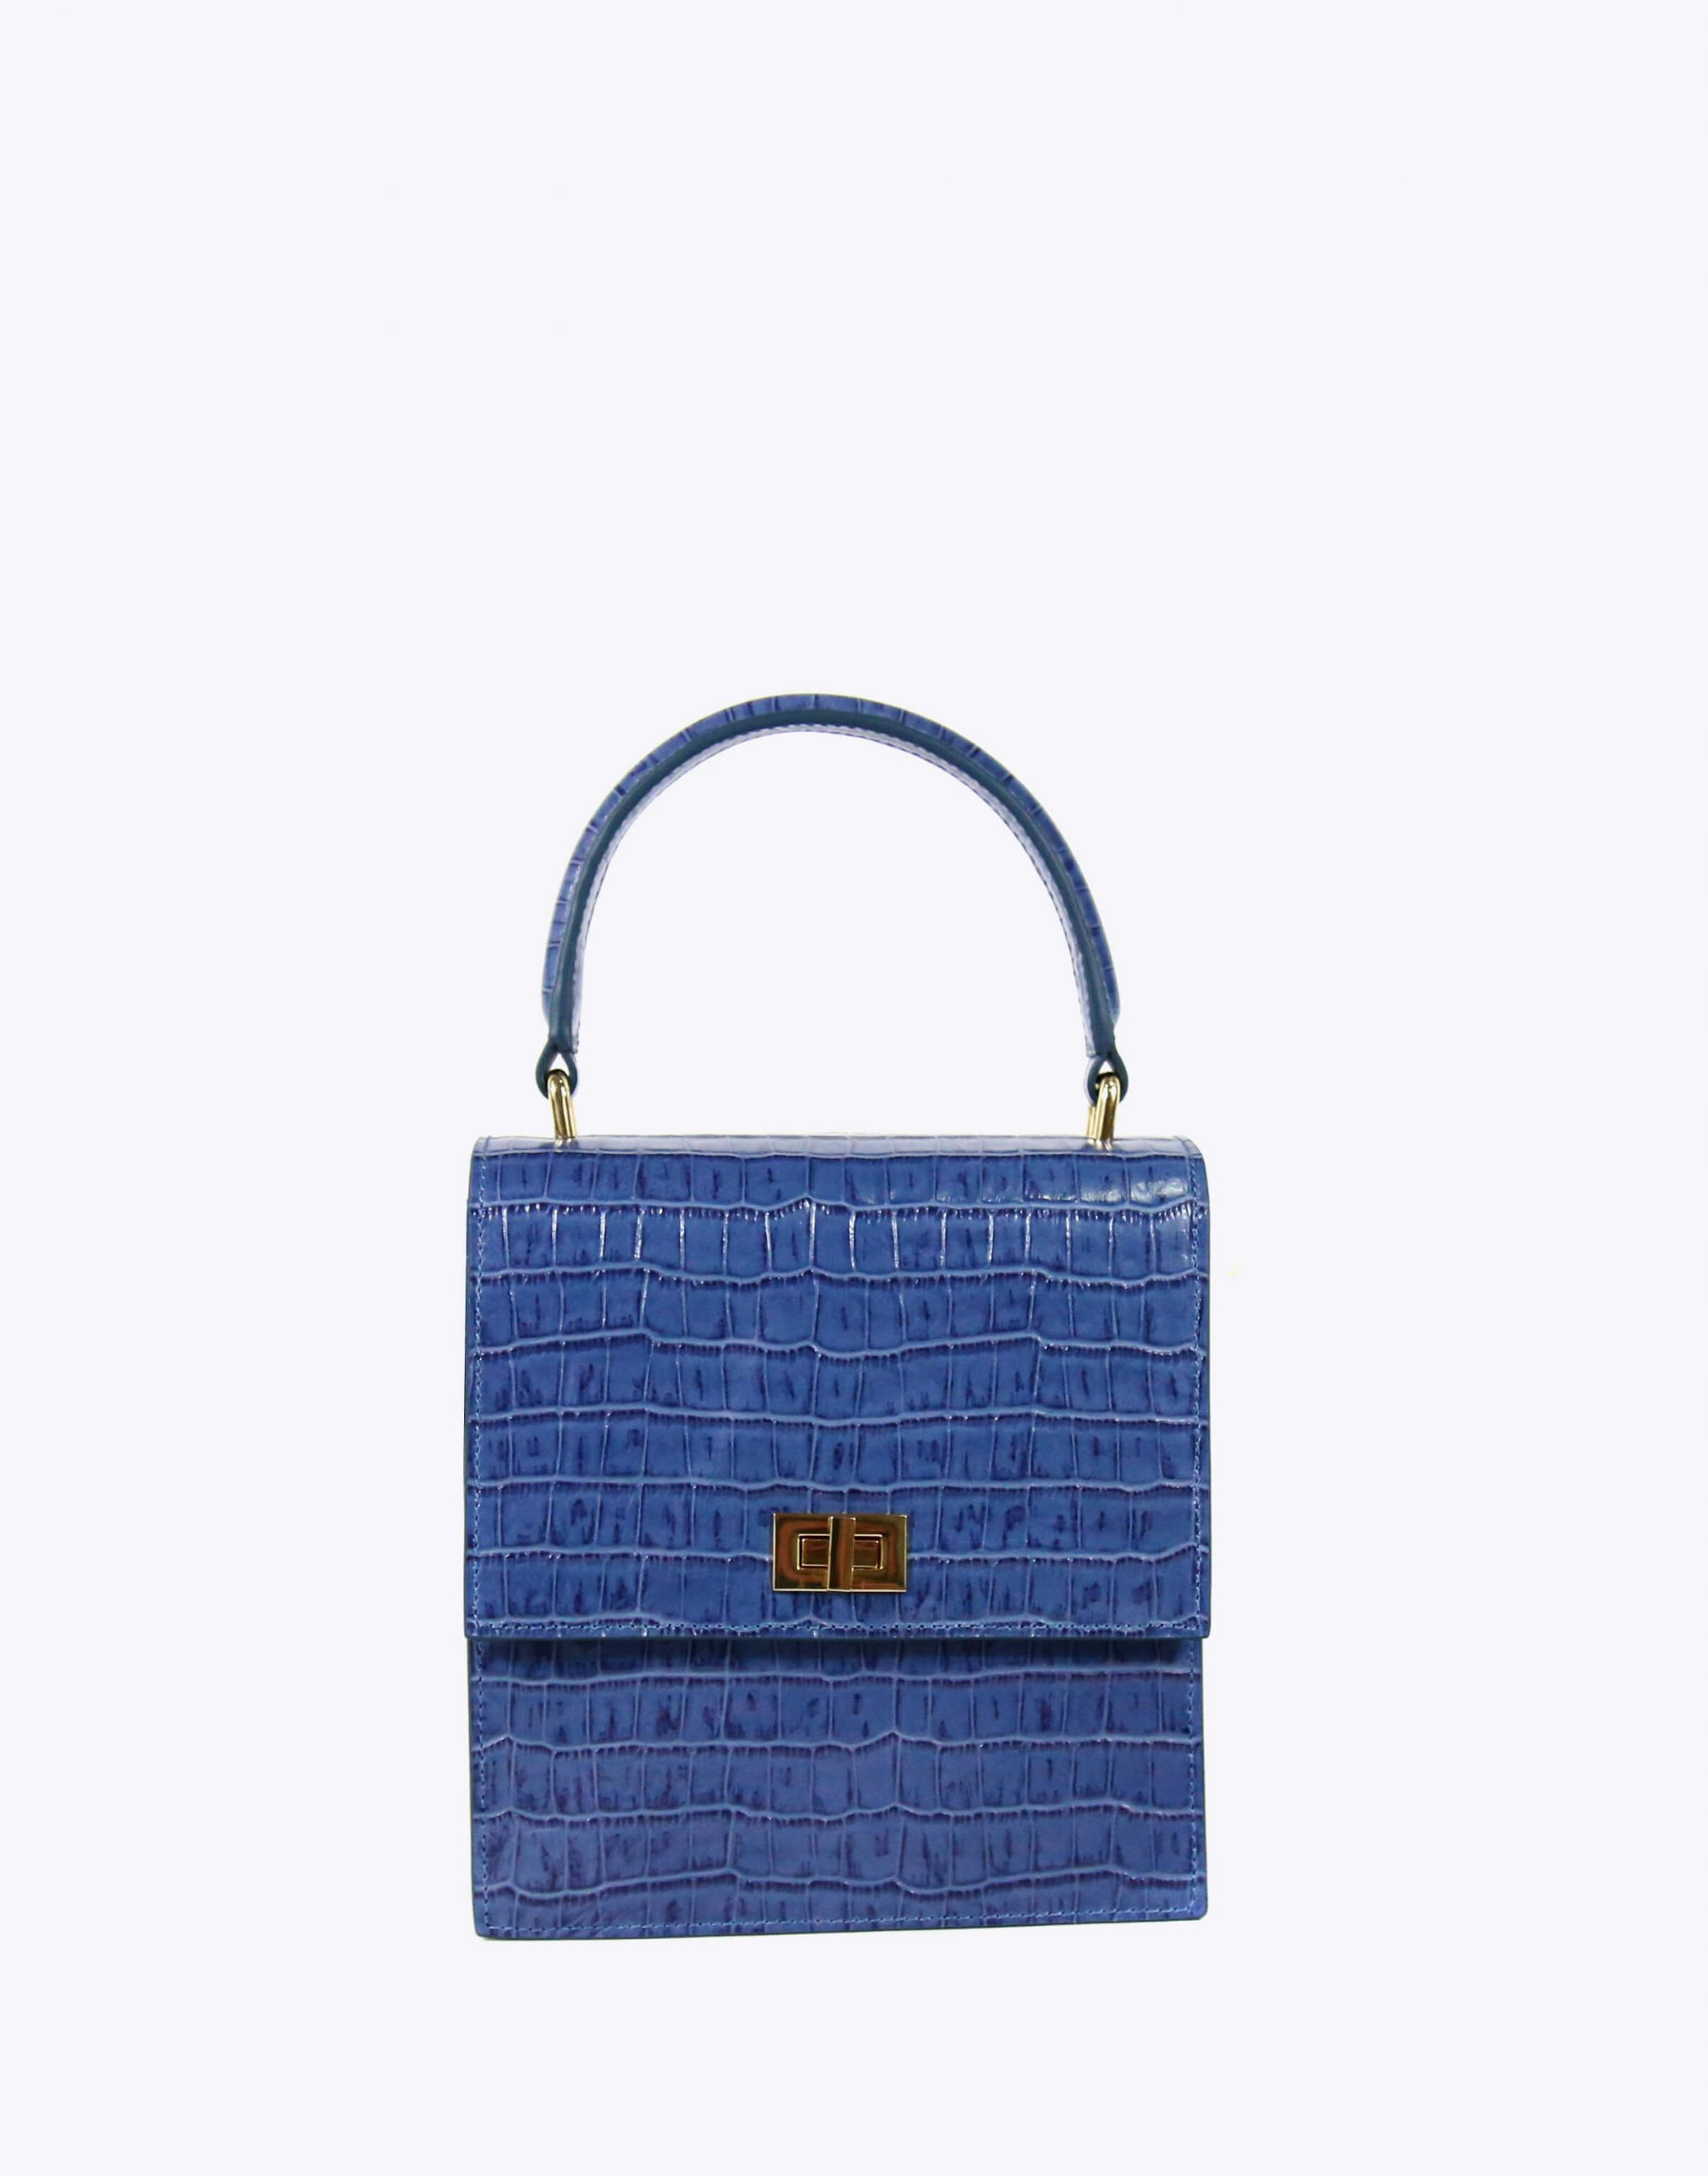 Neely & Chloe No. 19 Mini Lady Bag Croc Front View Moonlight Blue